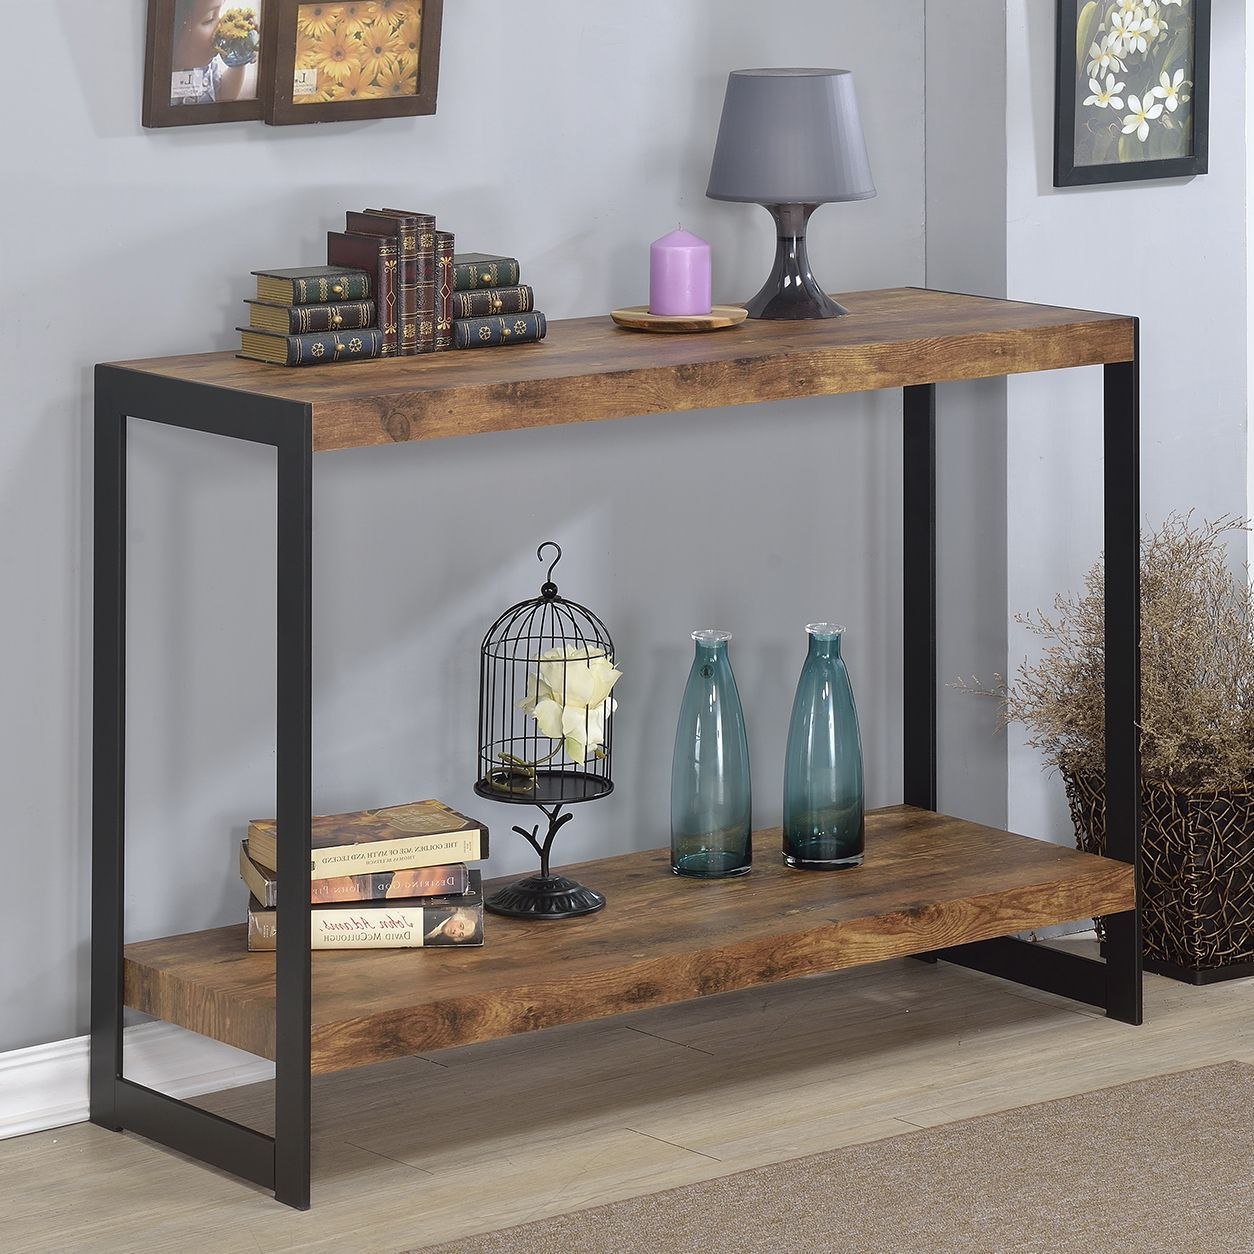 The Industrial Console Table Features A Rustic Wood Finish Laminite throughout Yukon Grey Console Tables (Image 25 of 30)